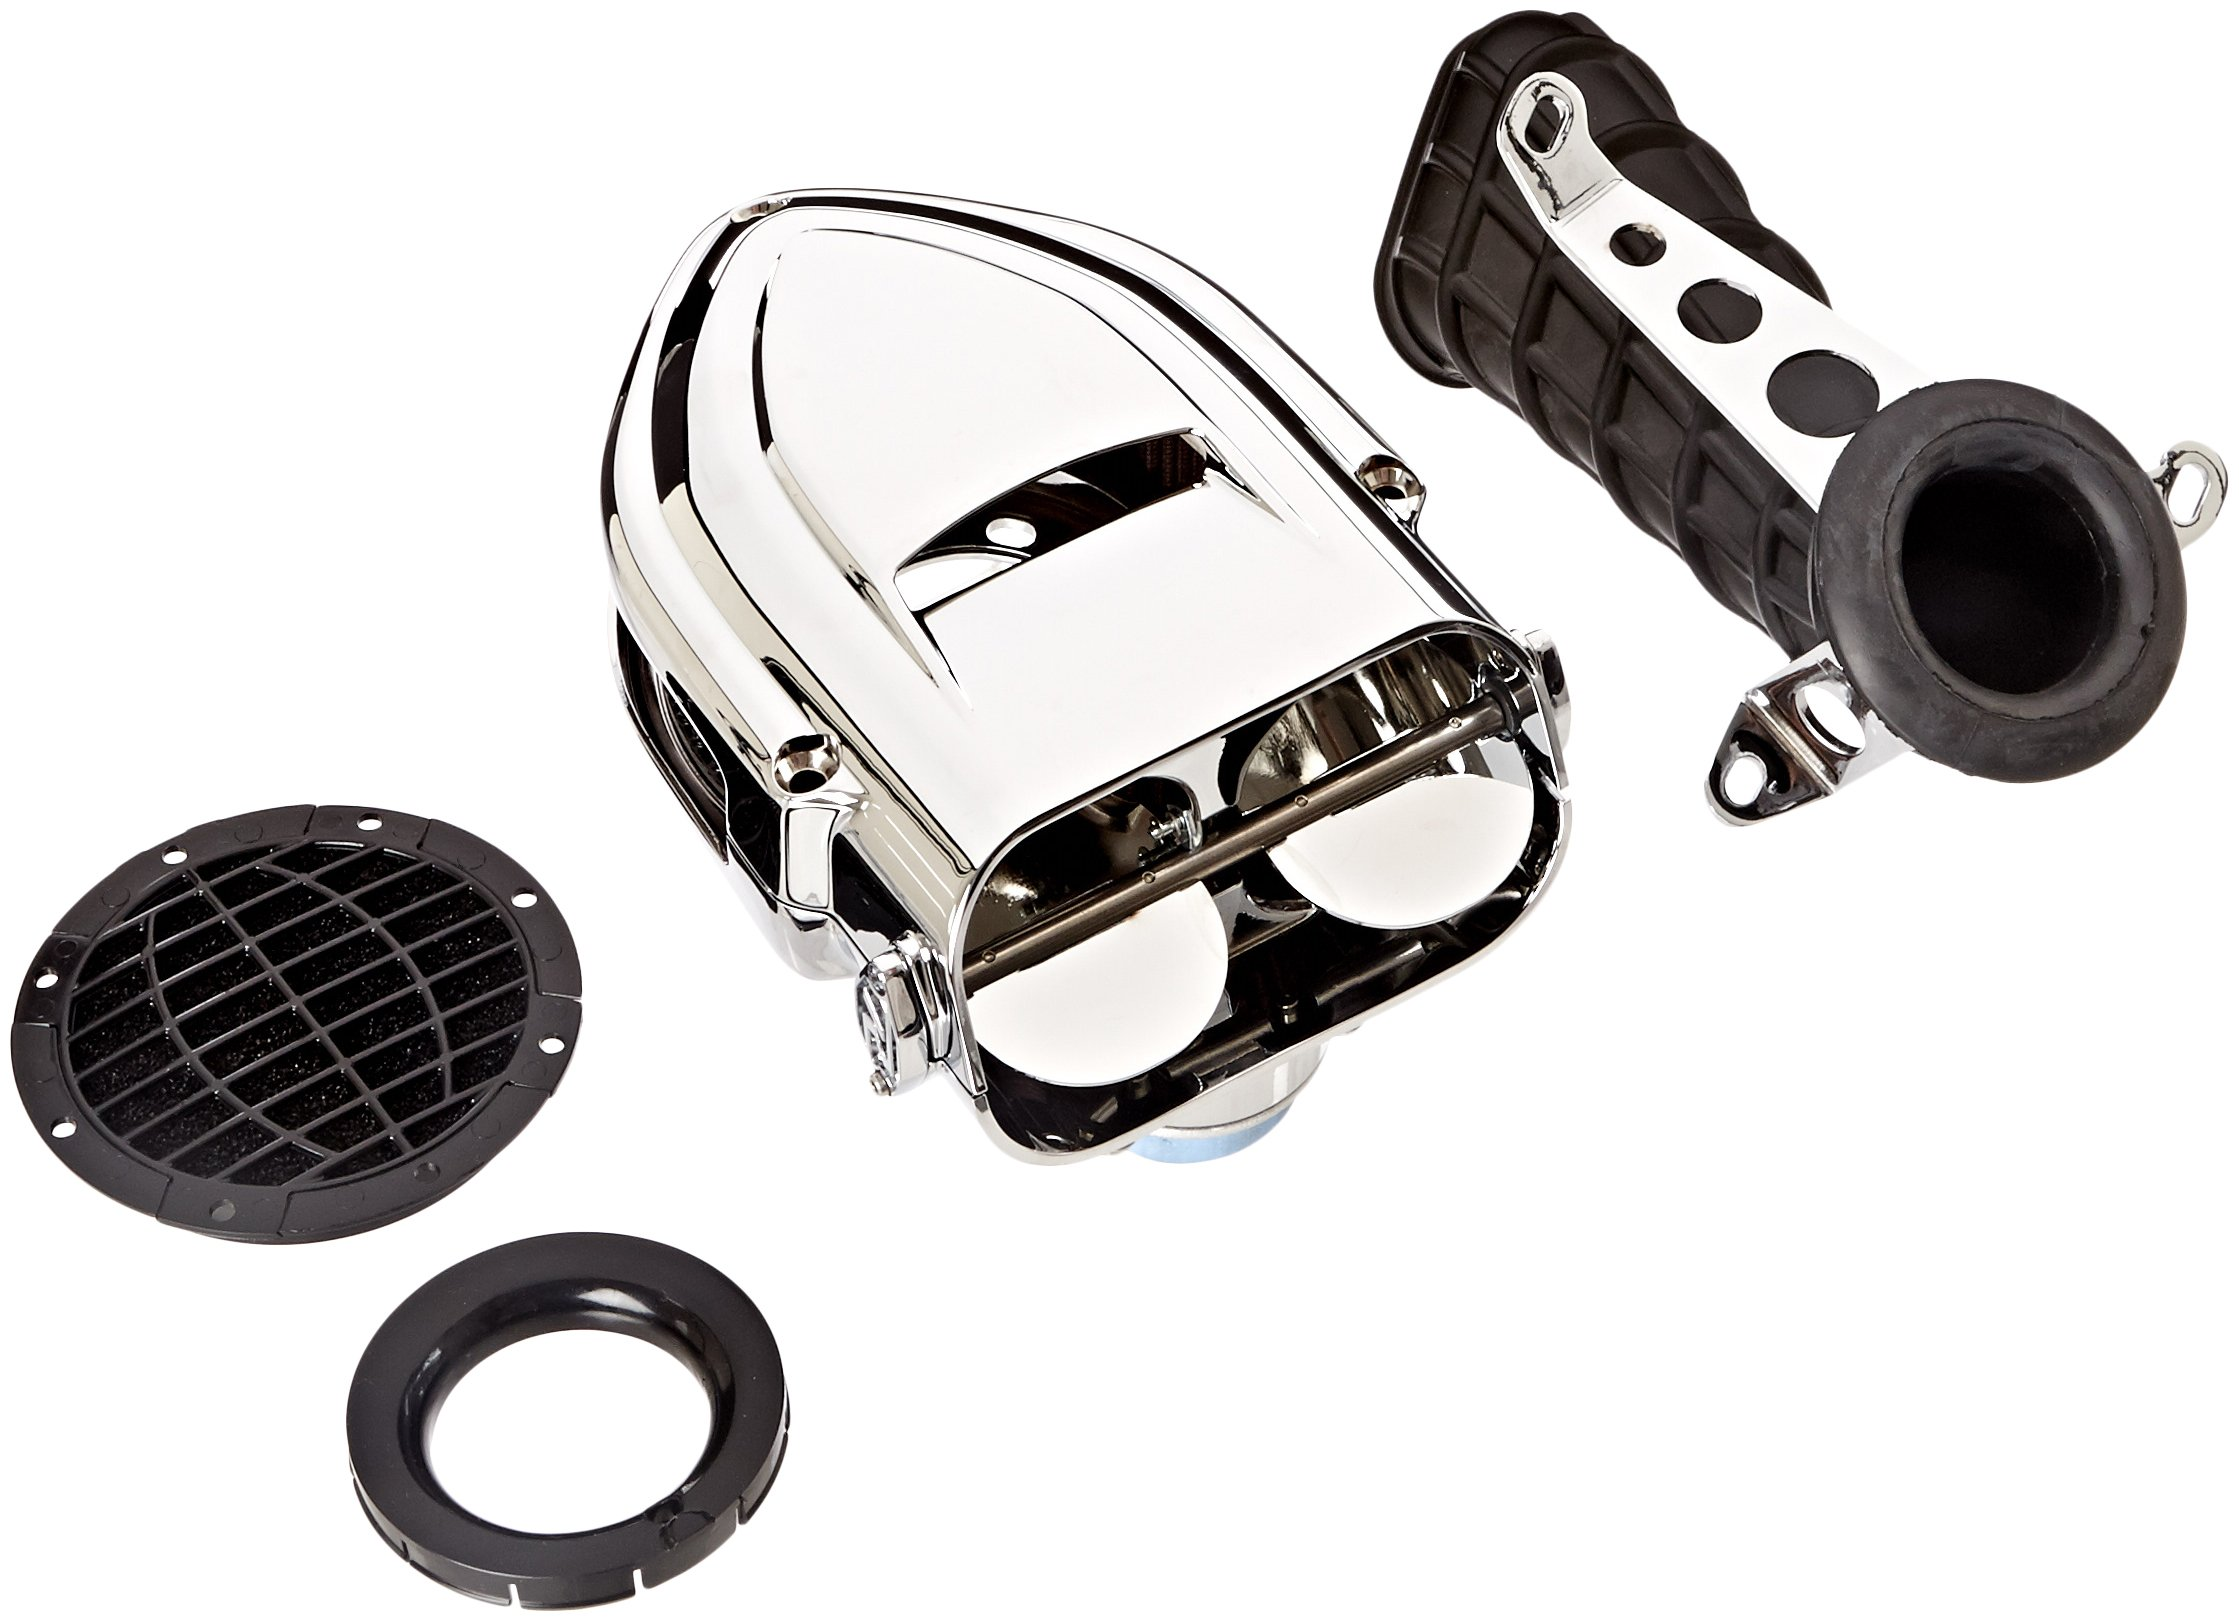 Kuryakyn 9463 Pro-R Hypercharger Air Cleaner/Filter for Metric Cruisers: 1999-2009 Yamaha V Star 1100 Motorcycles, Chrome by Kuryakyn (Image #1)